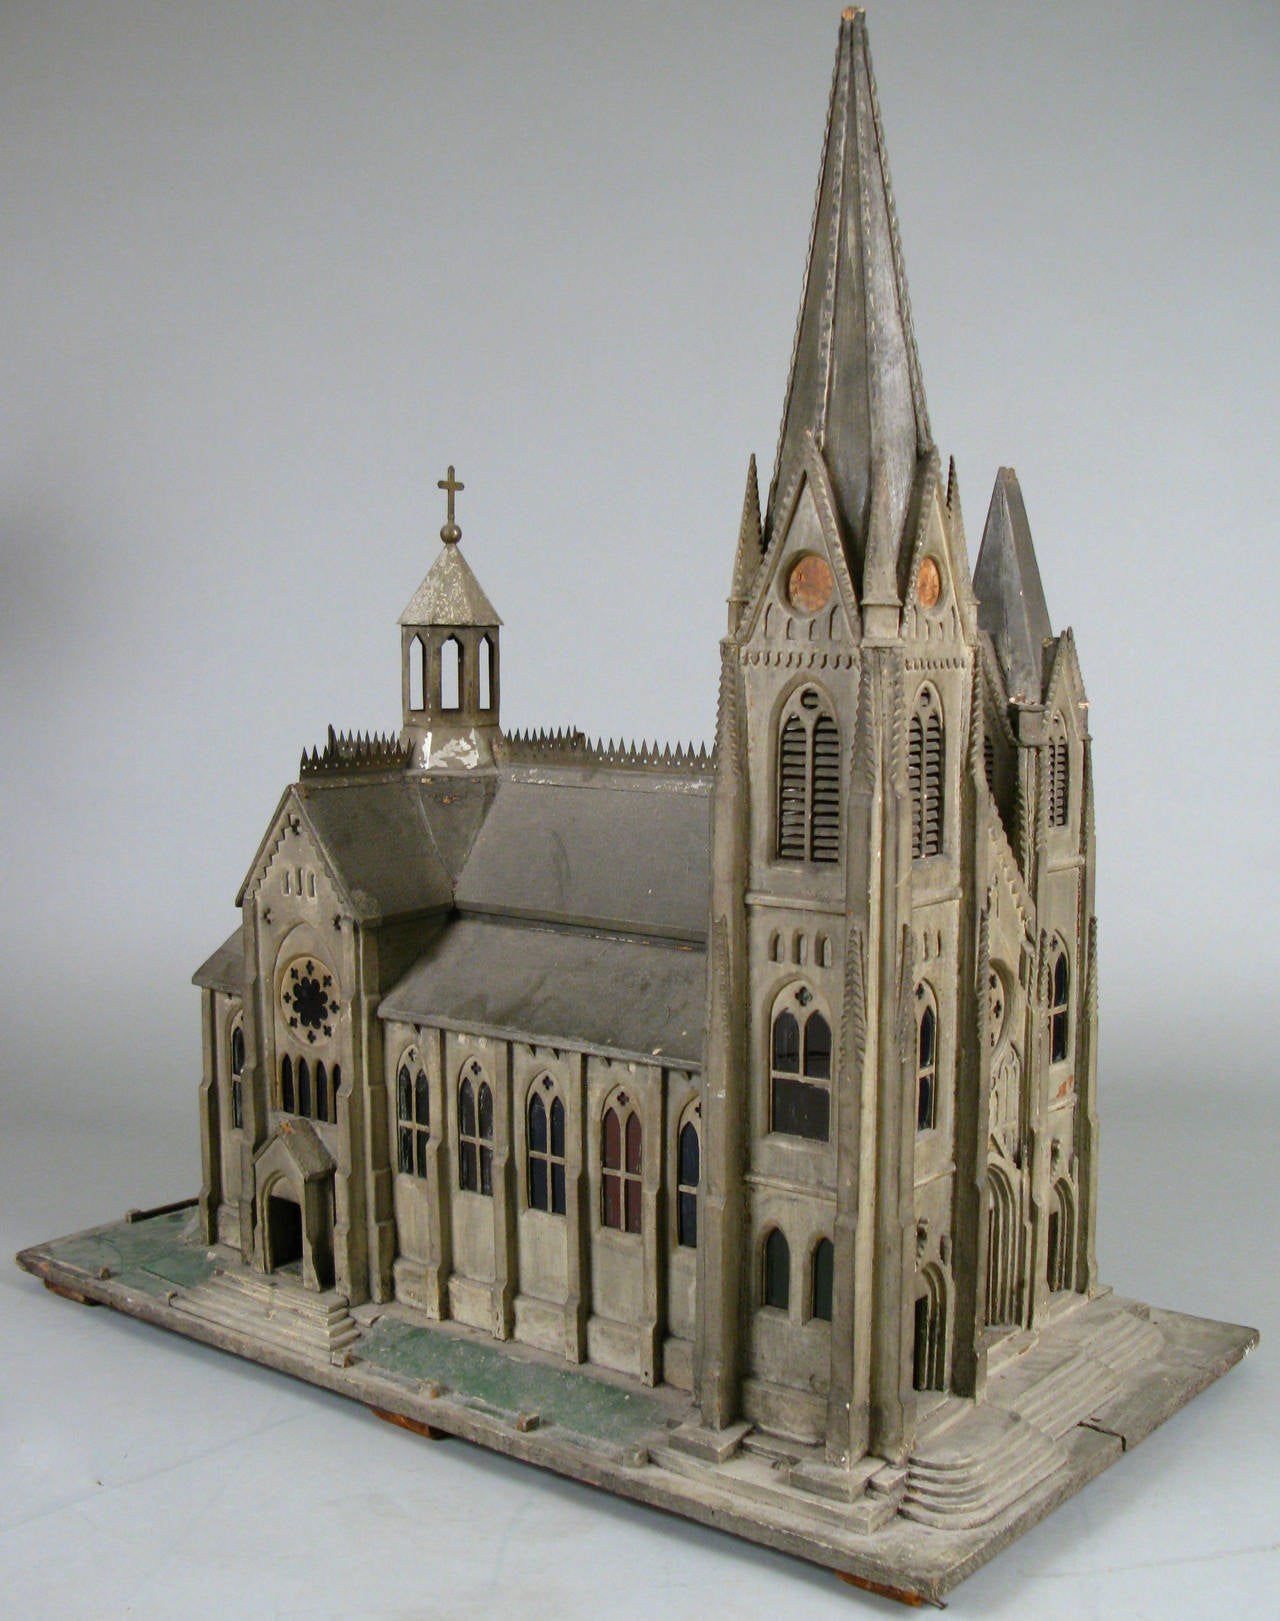 Handcrafted 19th century church model for sale at 1stdibs for Architecture models for sale